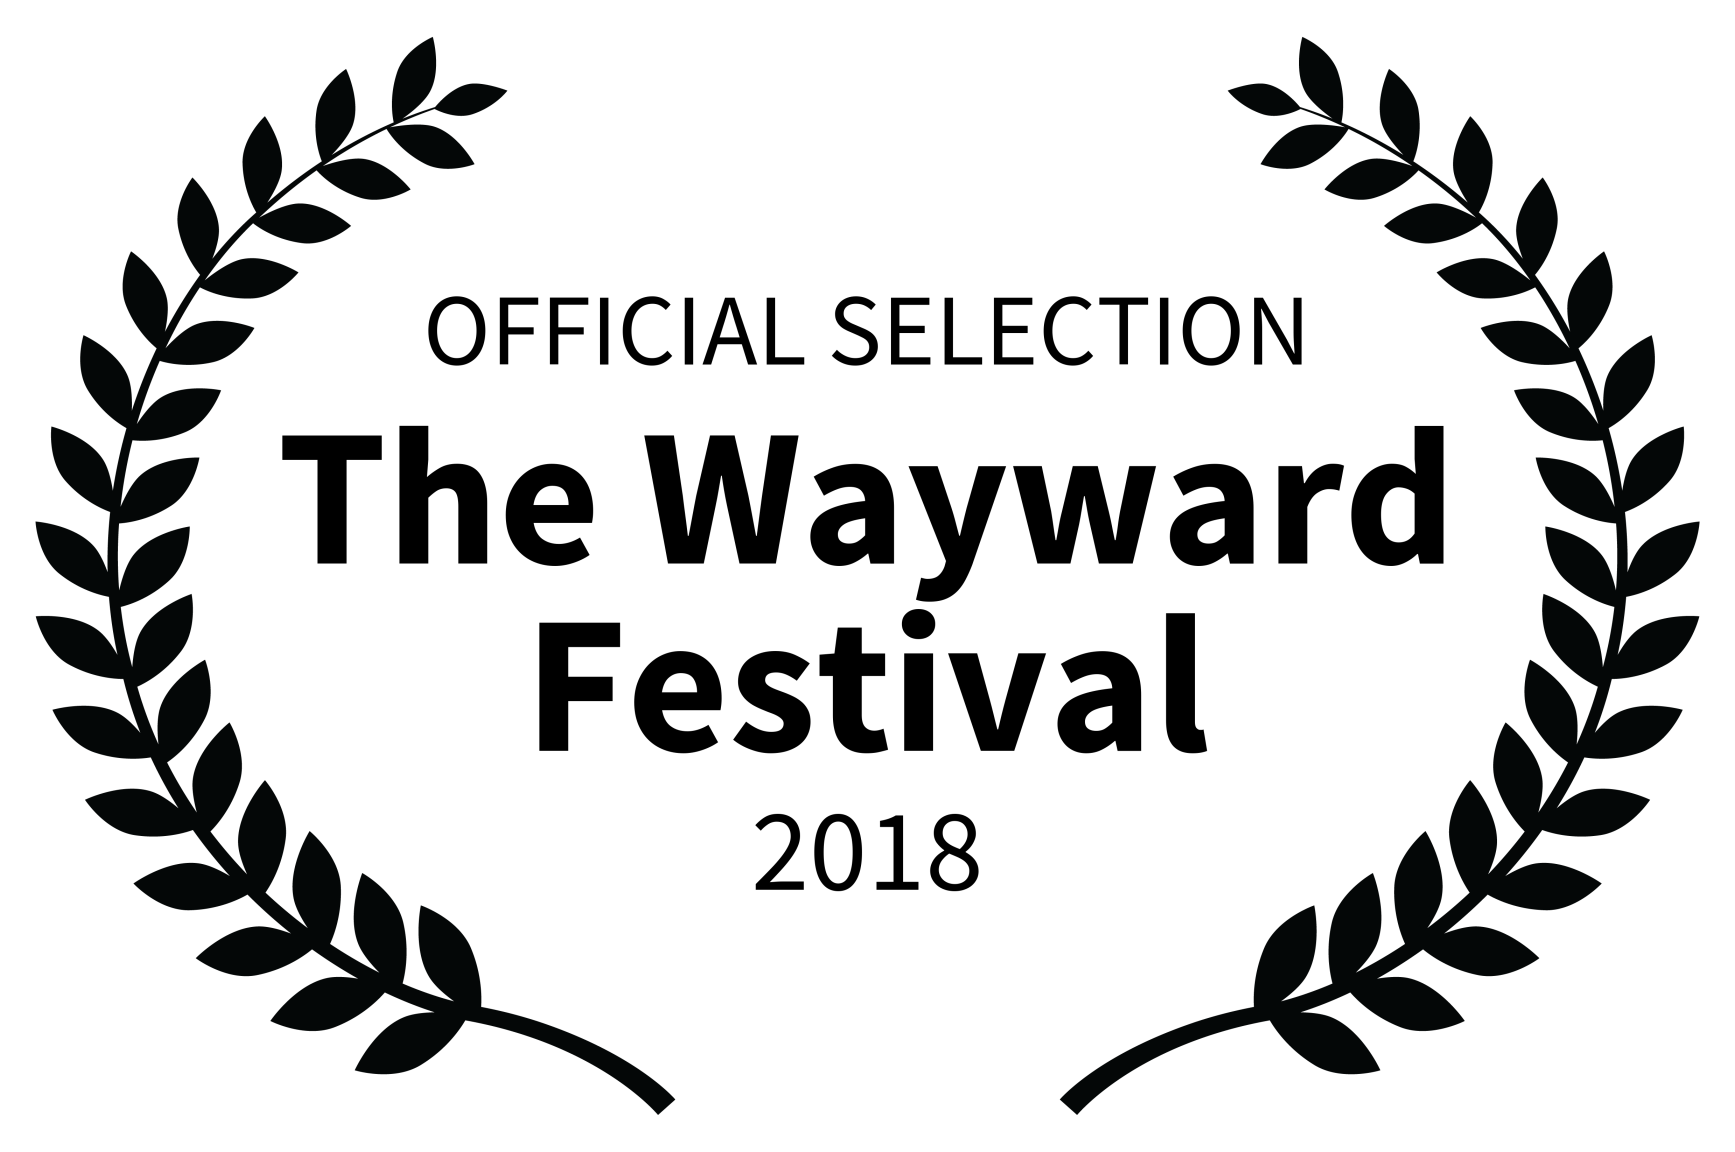 OFFICIAL SELECTION - The Wayward Festiva